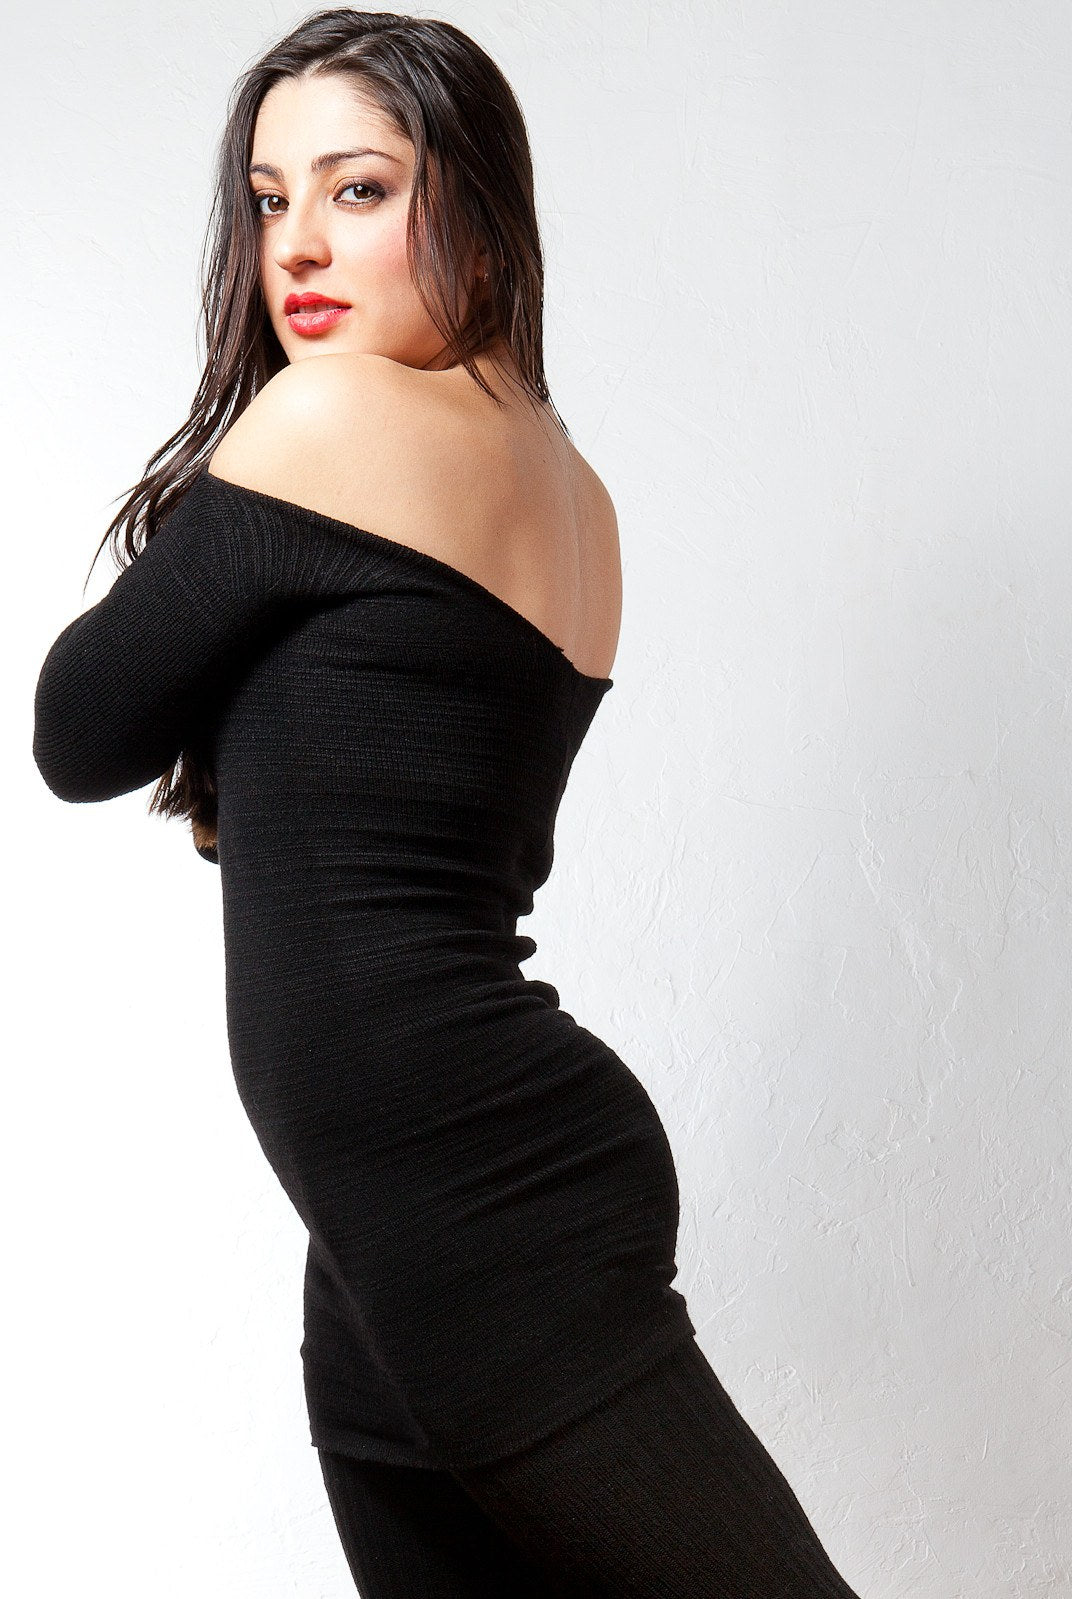 Sexy Little Black Stretch Knit Dress & 28 Inch Thigh High Leg Warmers KD dance Made In USA @KDdanceNewYork #MadeInUSA - 4